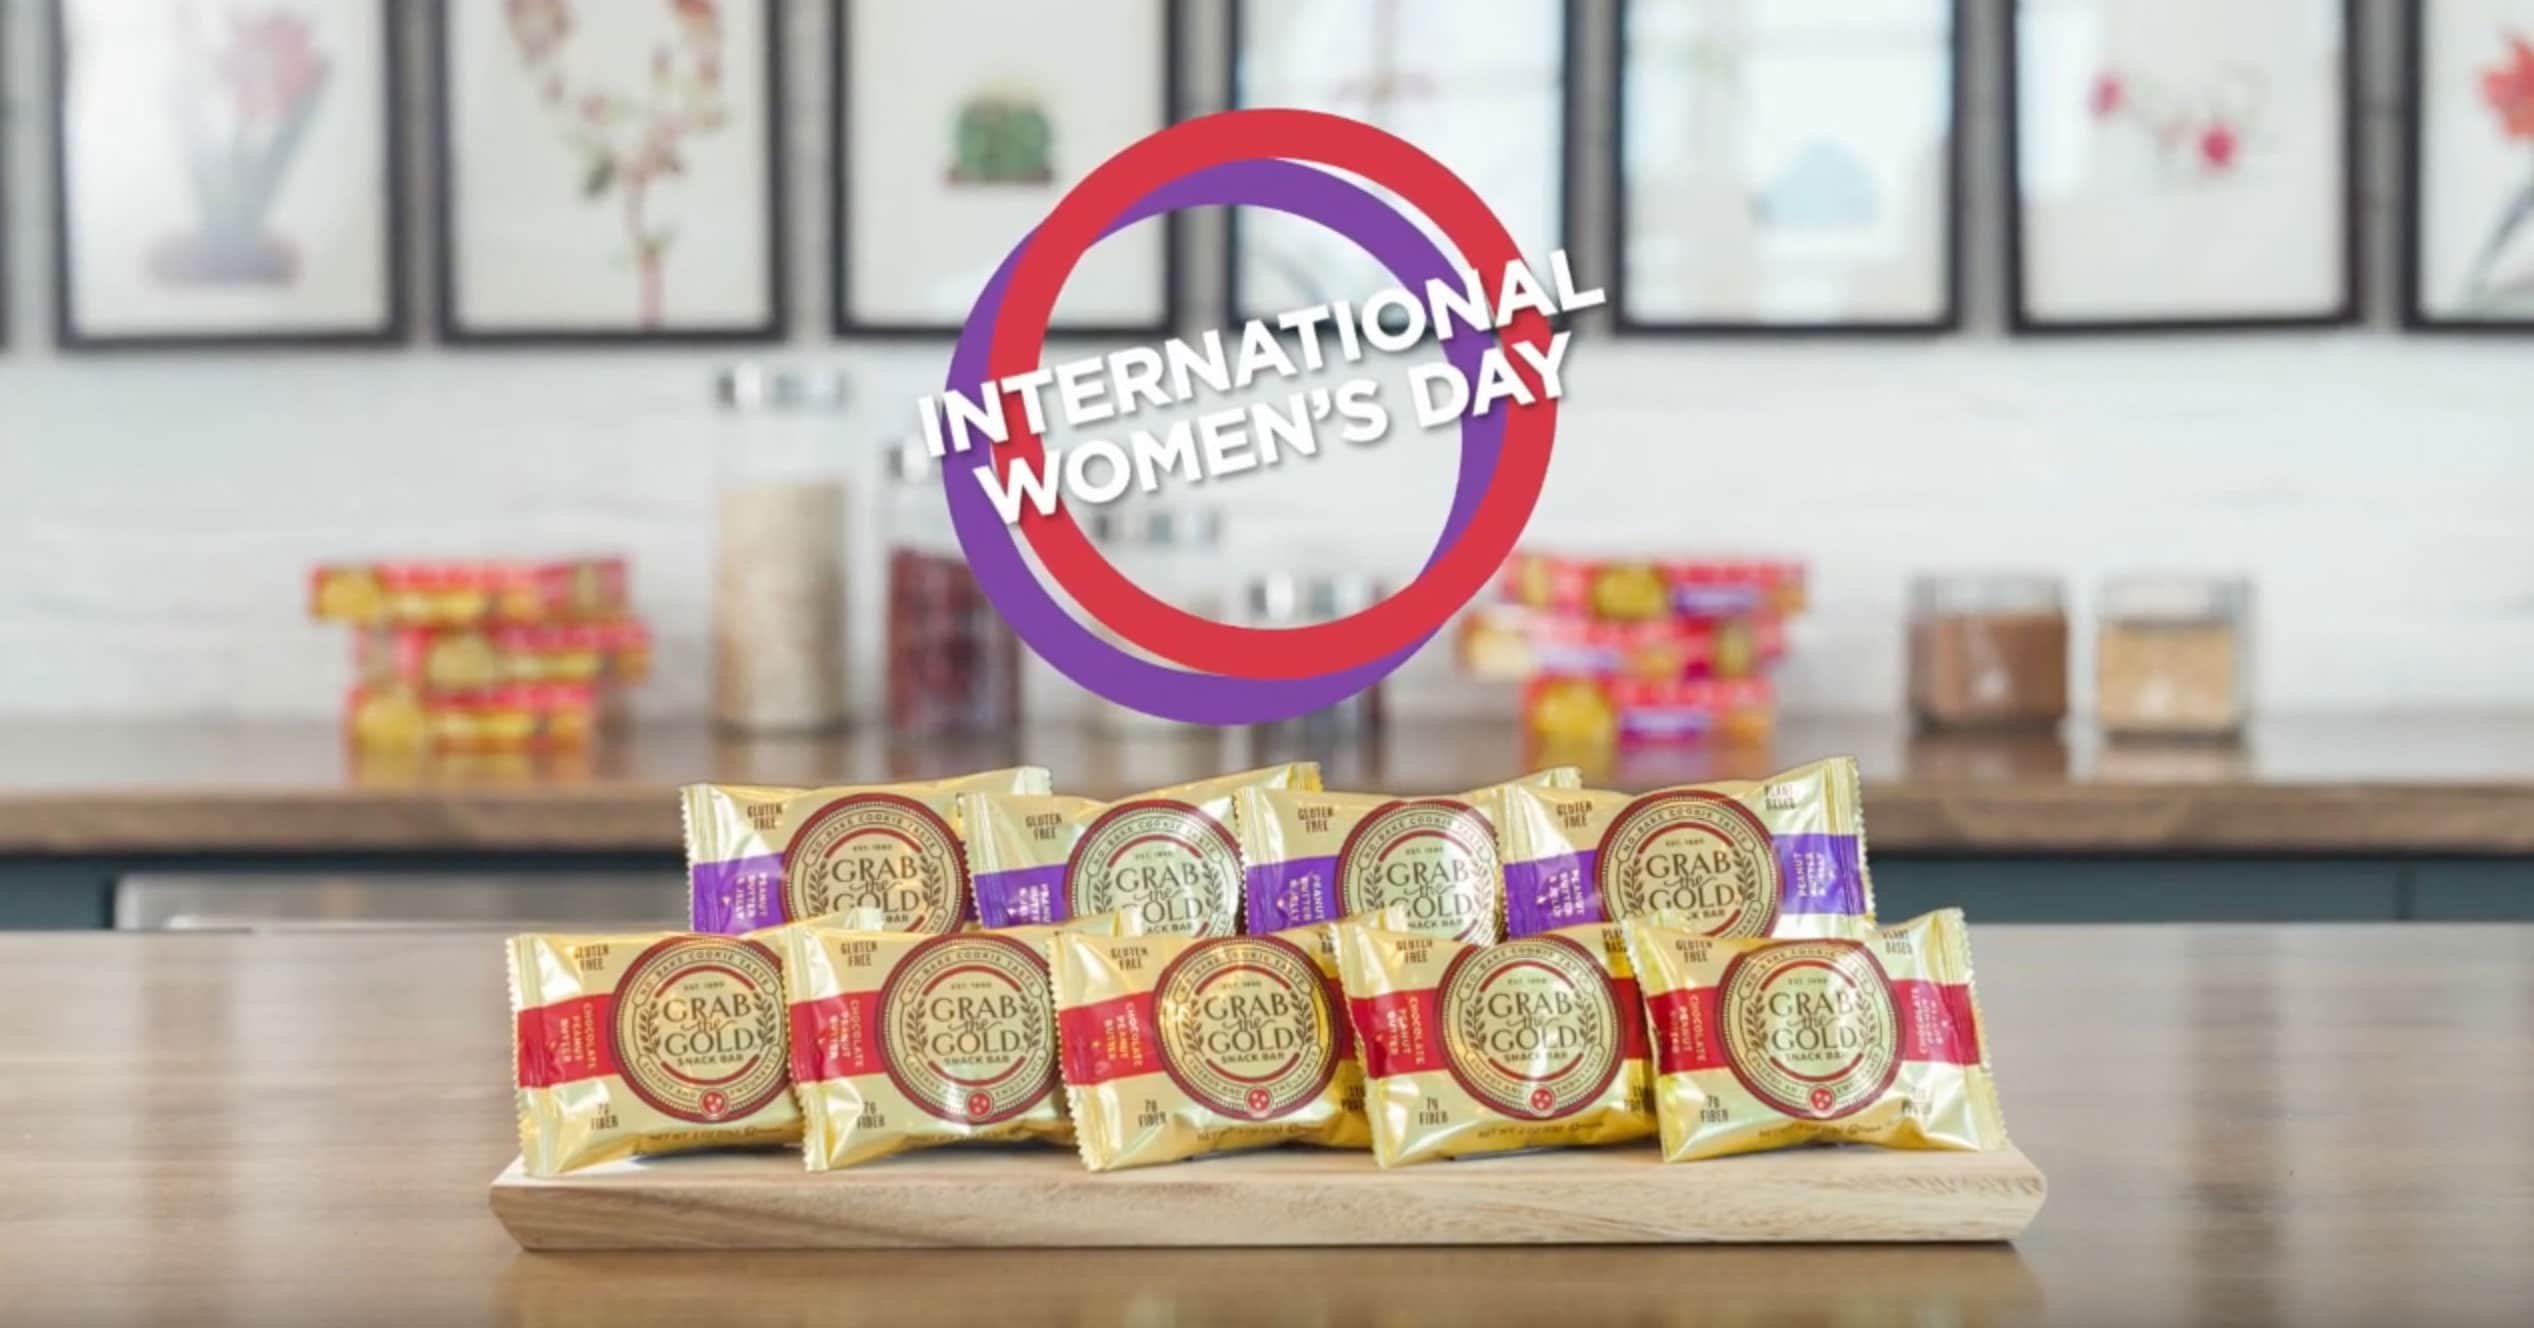 grab-the-gold-international-womens-day-video-thumbnail